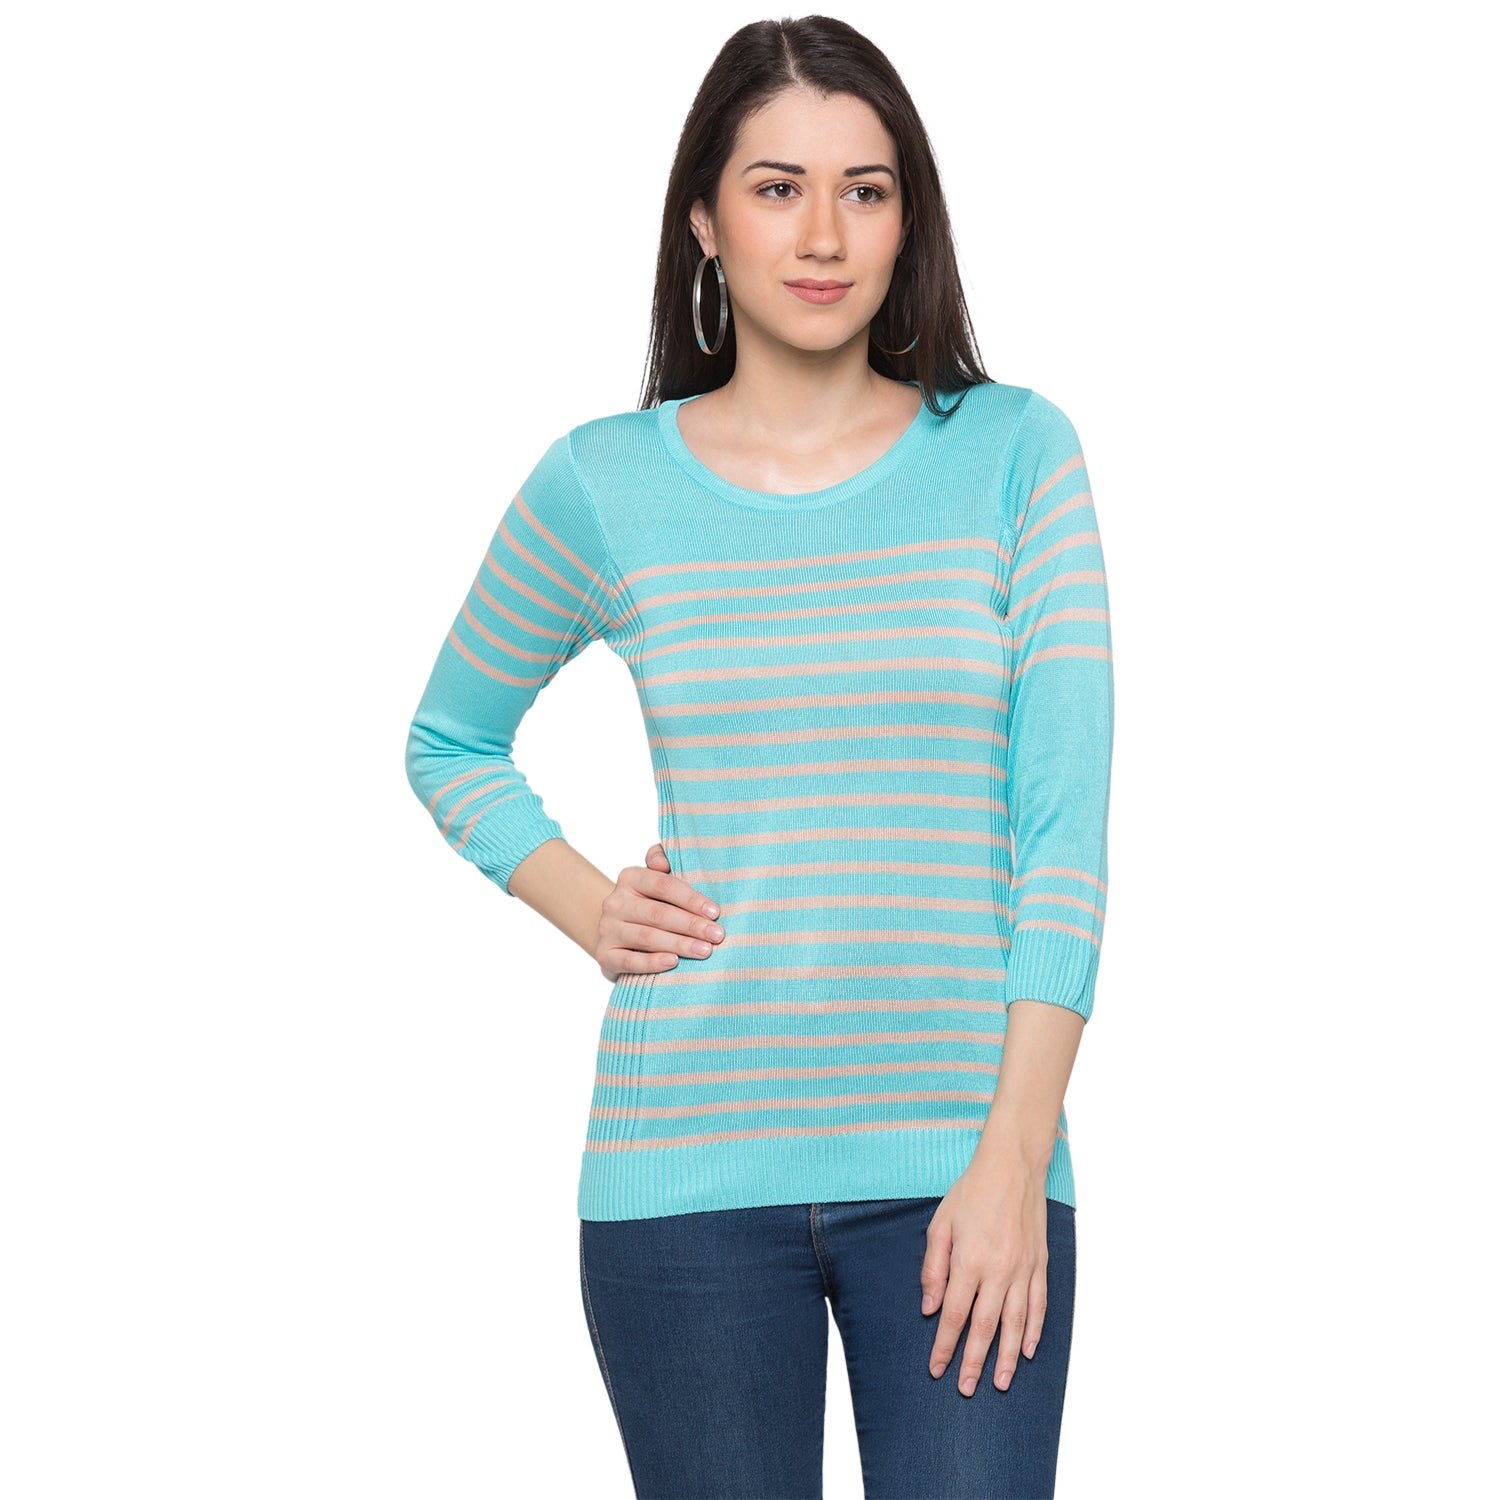 Globus Blue Striped Top1